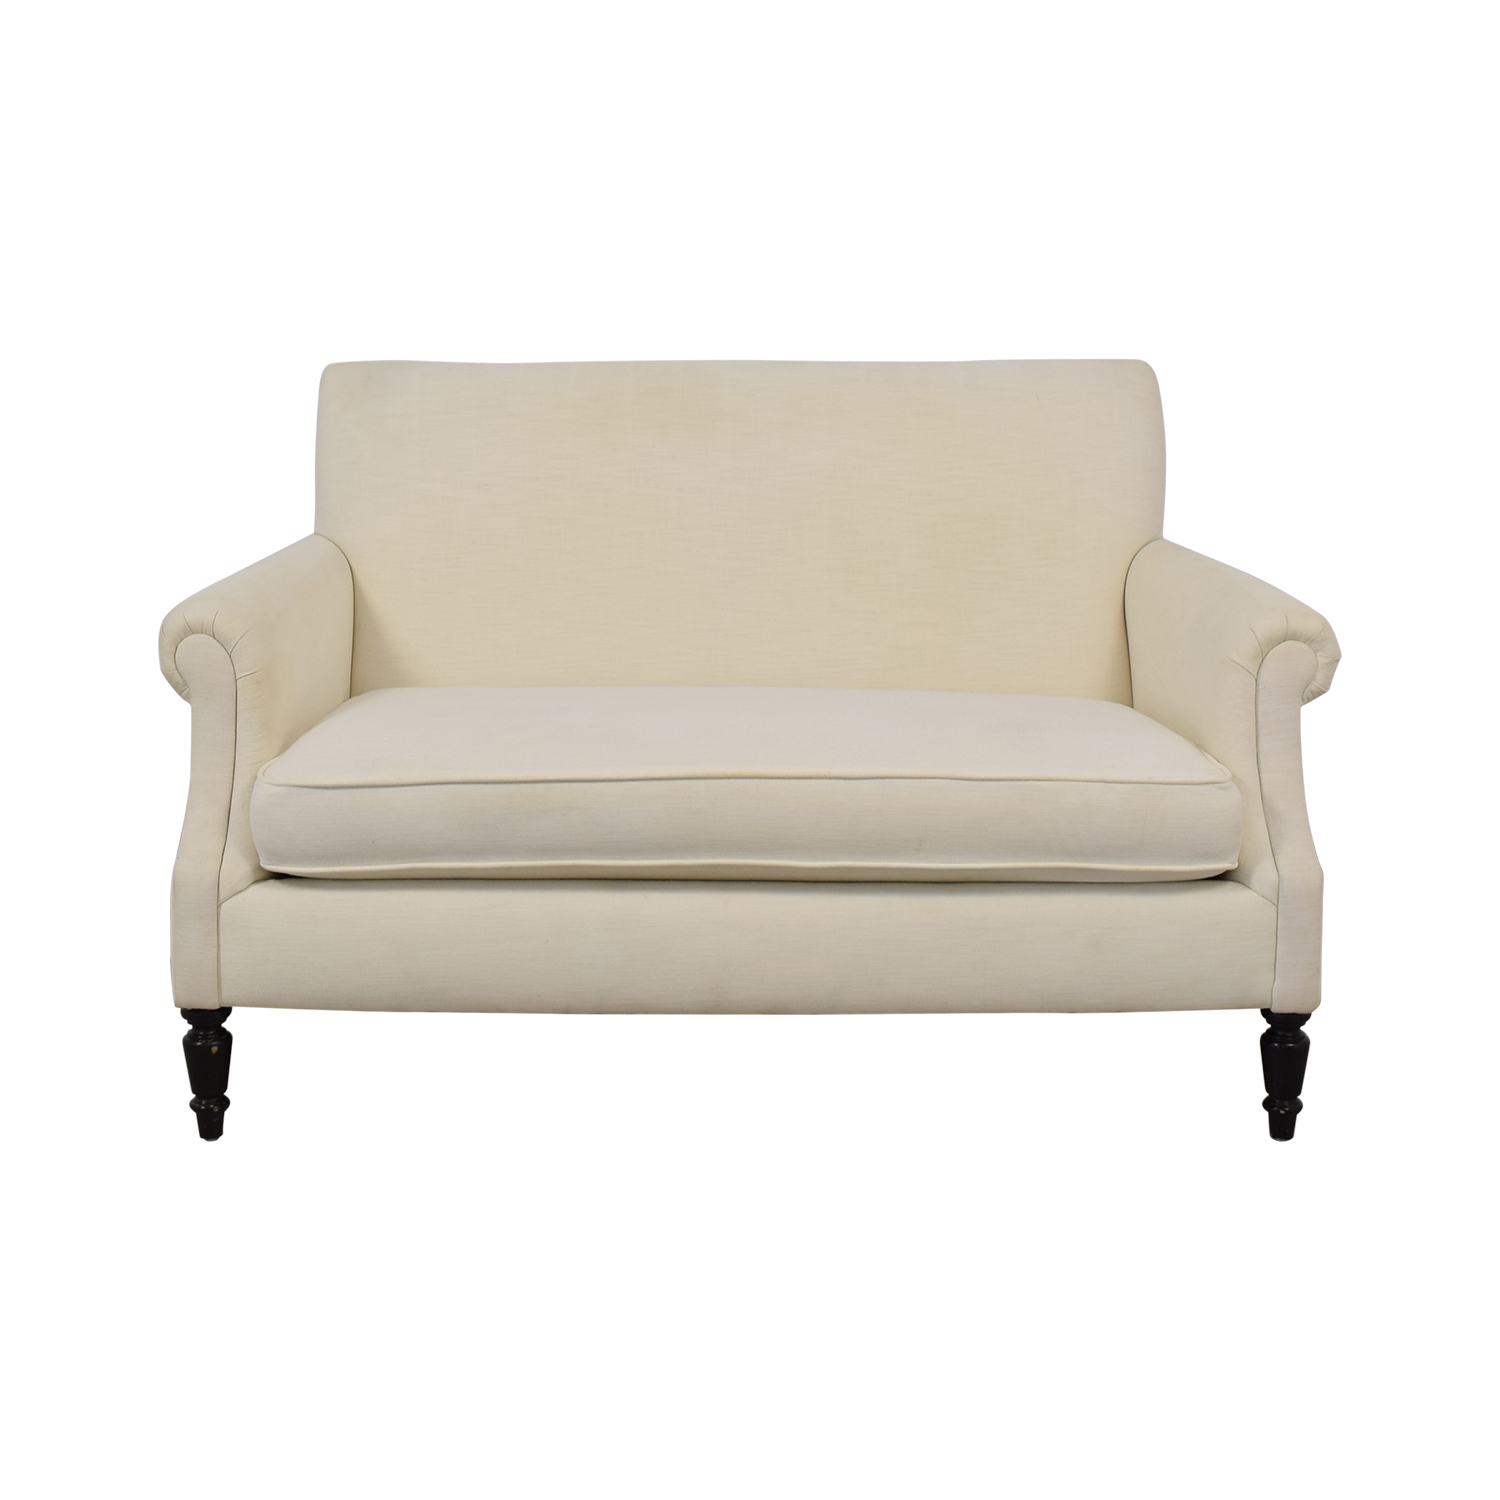 Crate & Barrel Roll Arm Loveseat sale